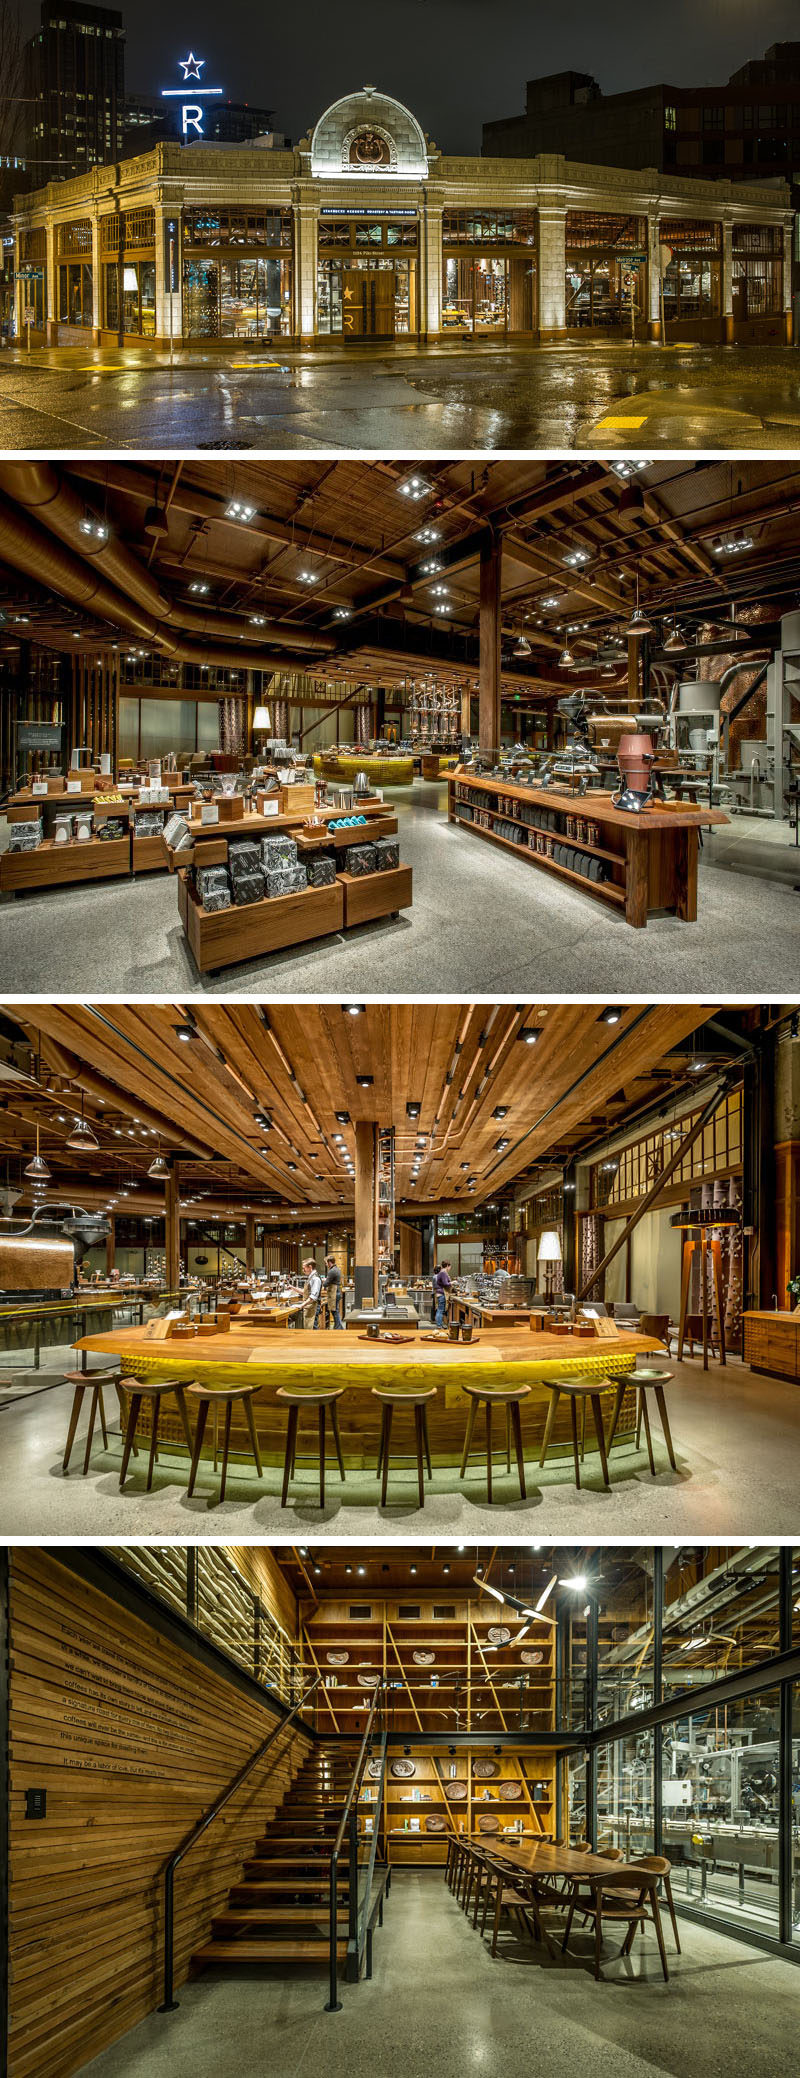 11 Starbucks Coffee Shops From Around The World // Starbucks' very own roasting and tasting facility, The Roastery, offers a unique experience unlike that of any other Starbucks location. Not only is the space huge and open, but guests at the Roastery are able to experience coffee in an immersive environment that allows them to engage with their coffee at every stage.